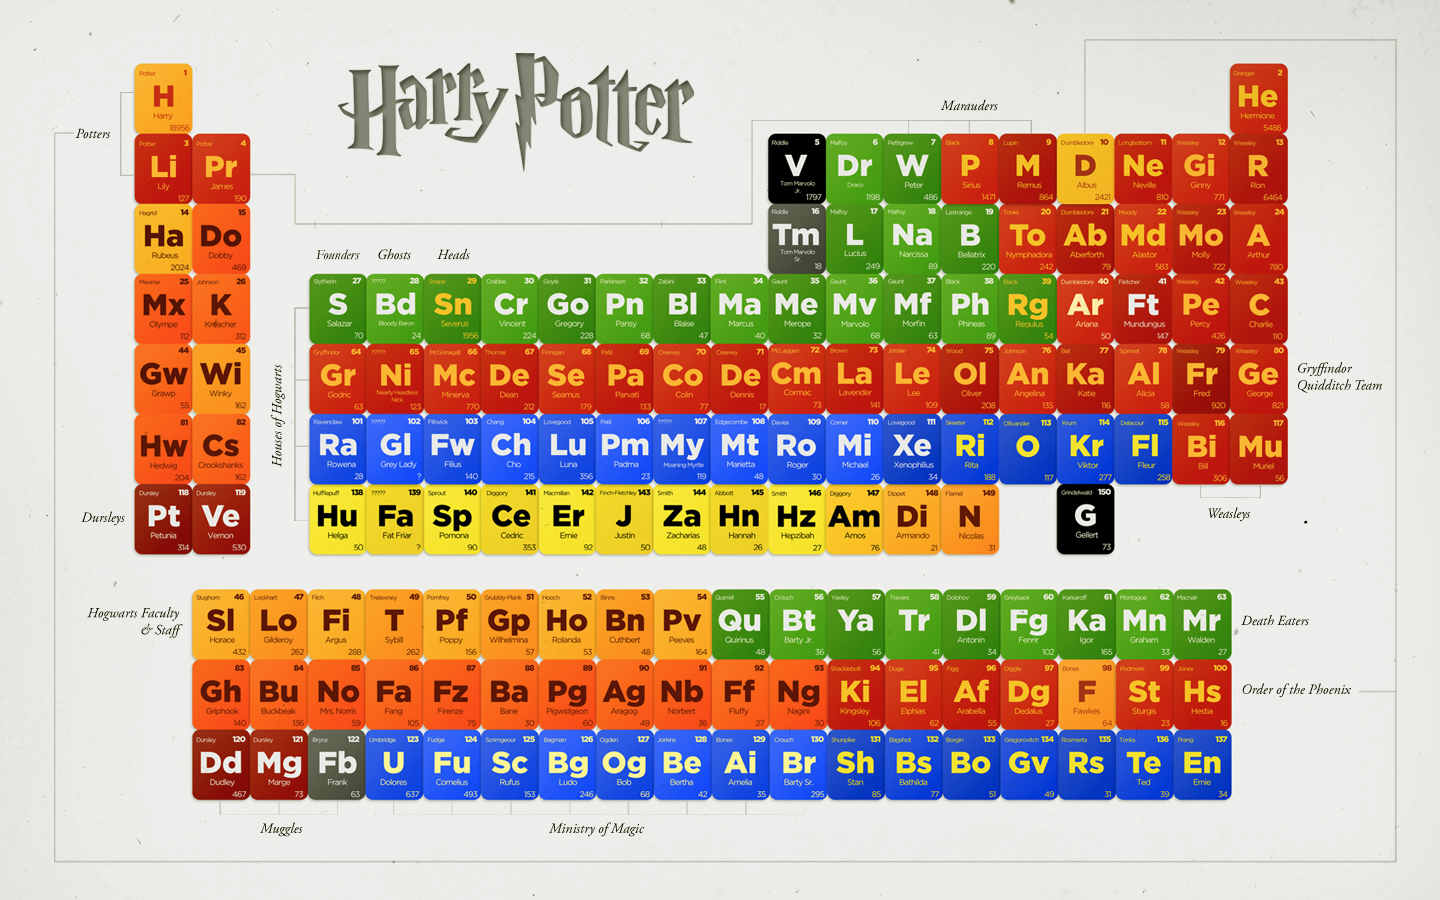 Sixth grade lesson periodic table of the elements exploration periodic table of harry potter gamestrikefo Gallery